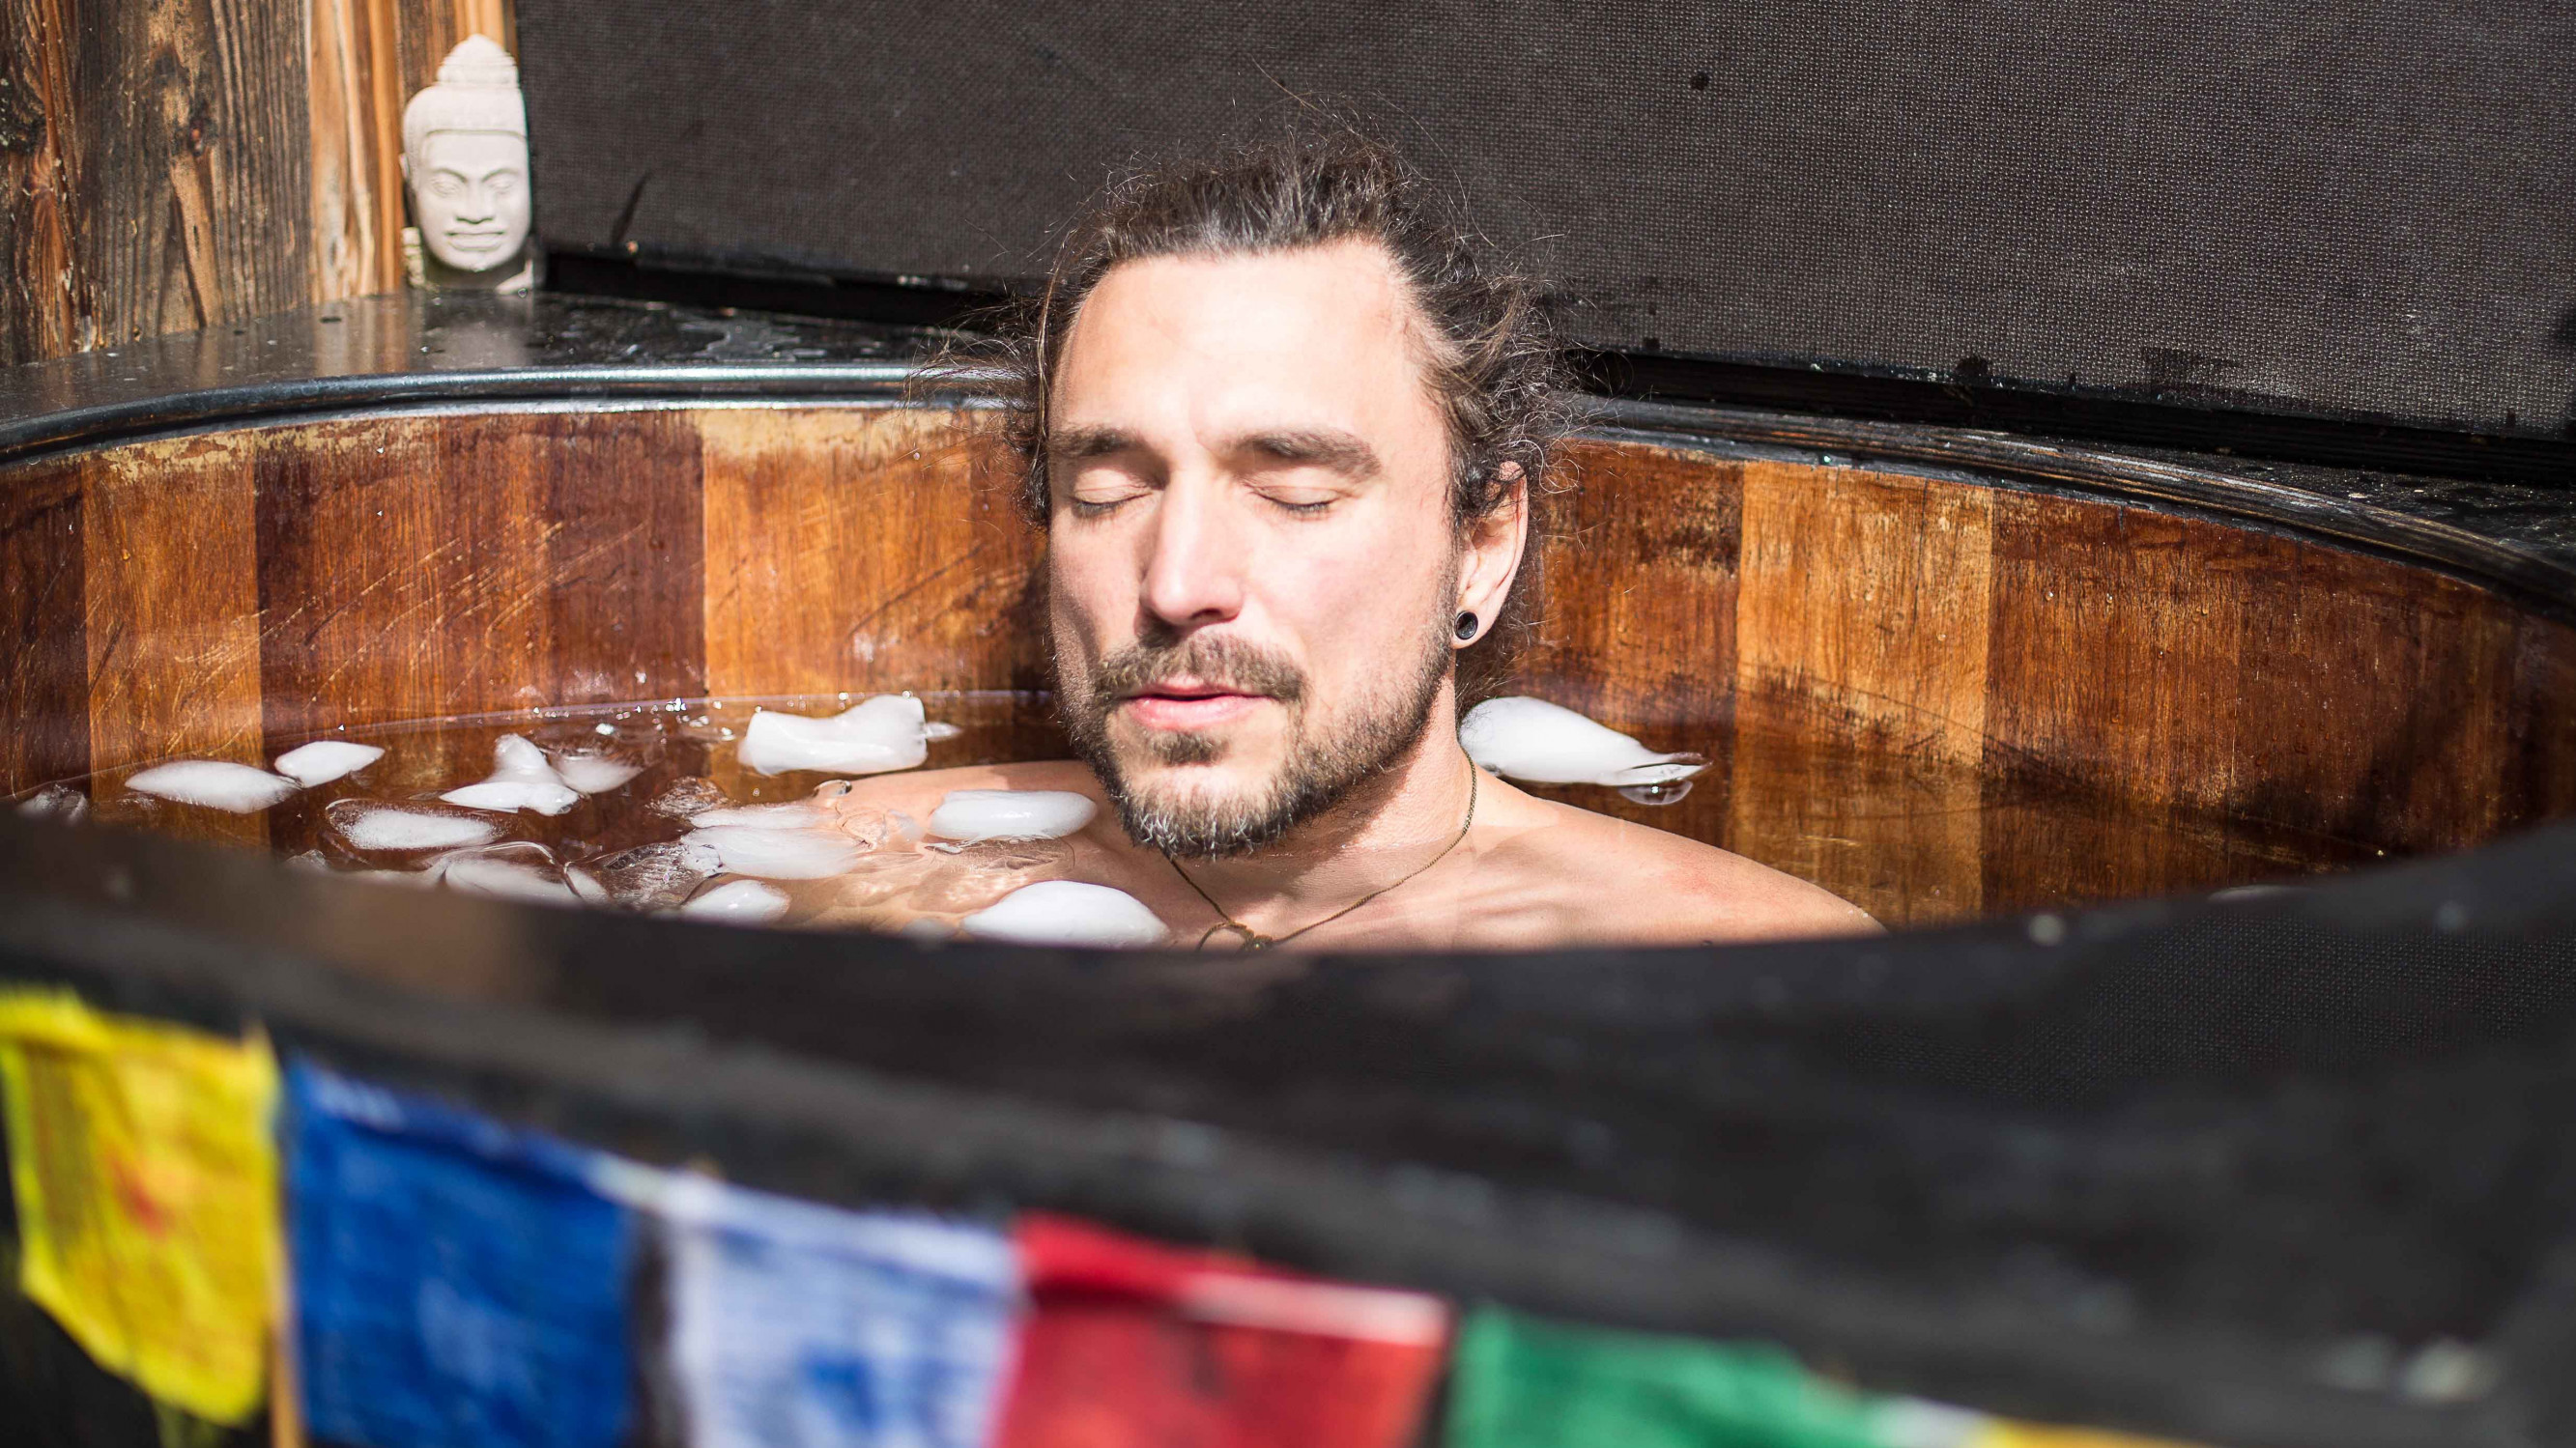 Image 3 of 7 - Experience the Wim Hof Method to get an impression of  at